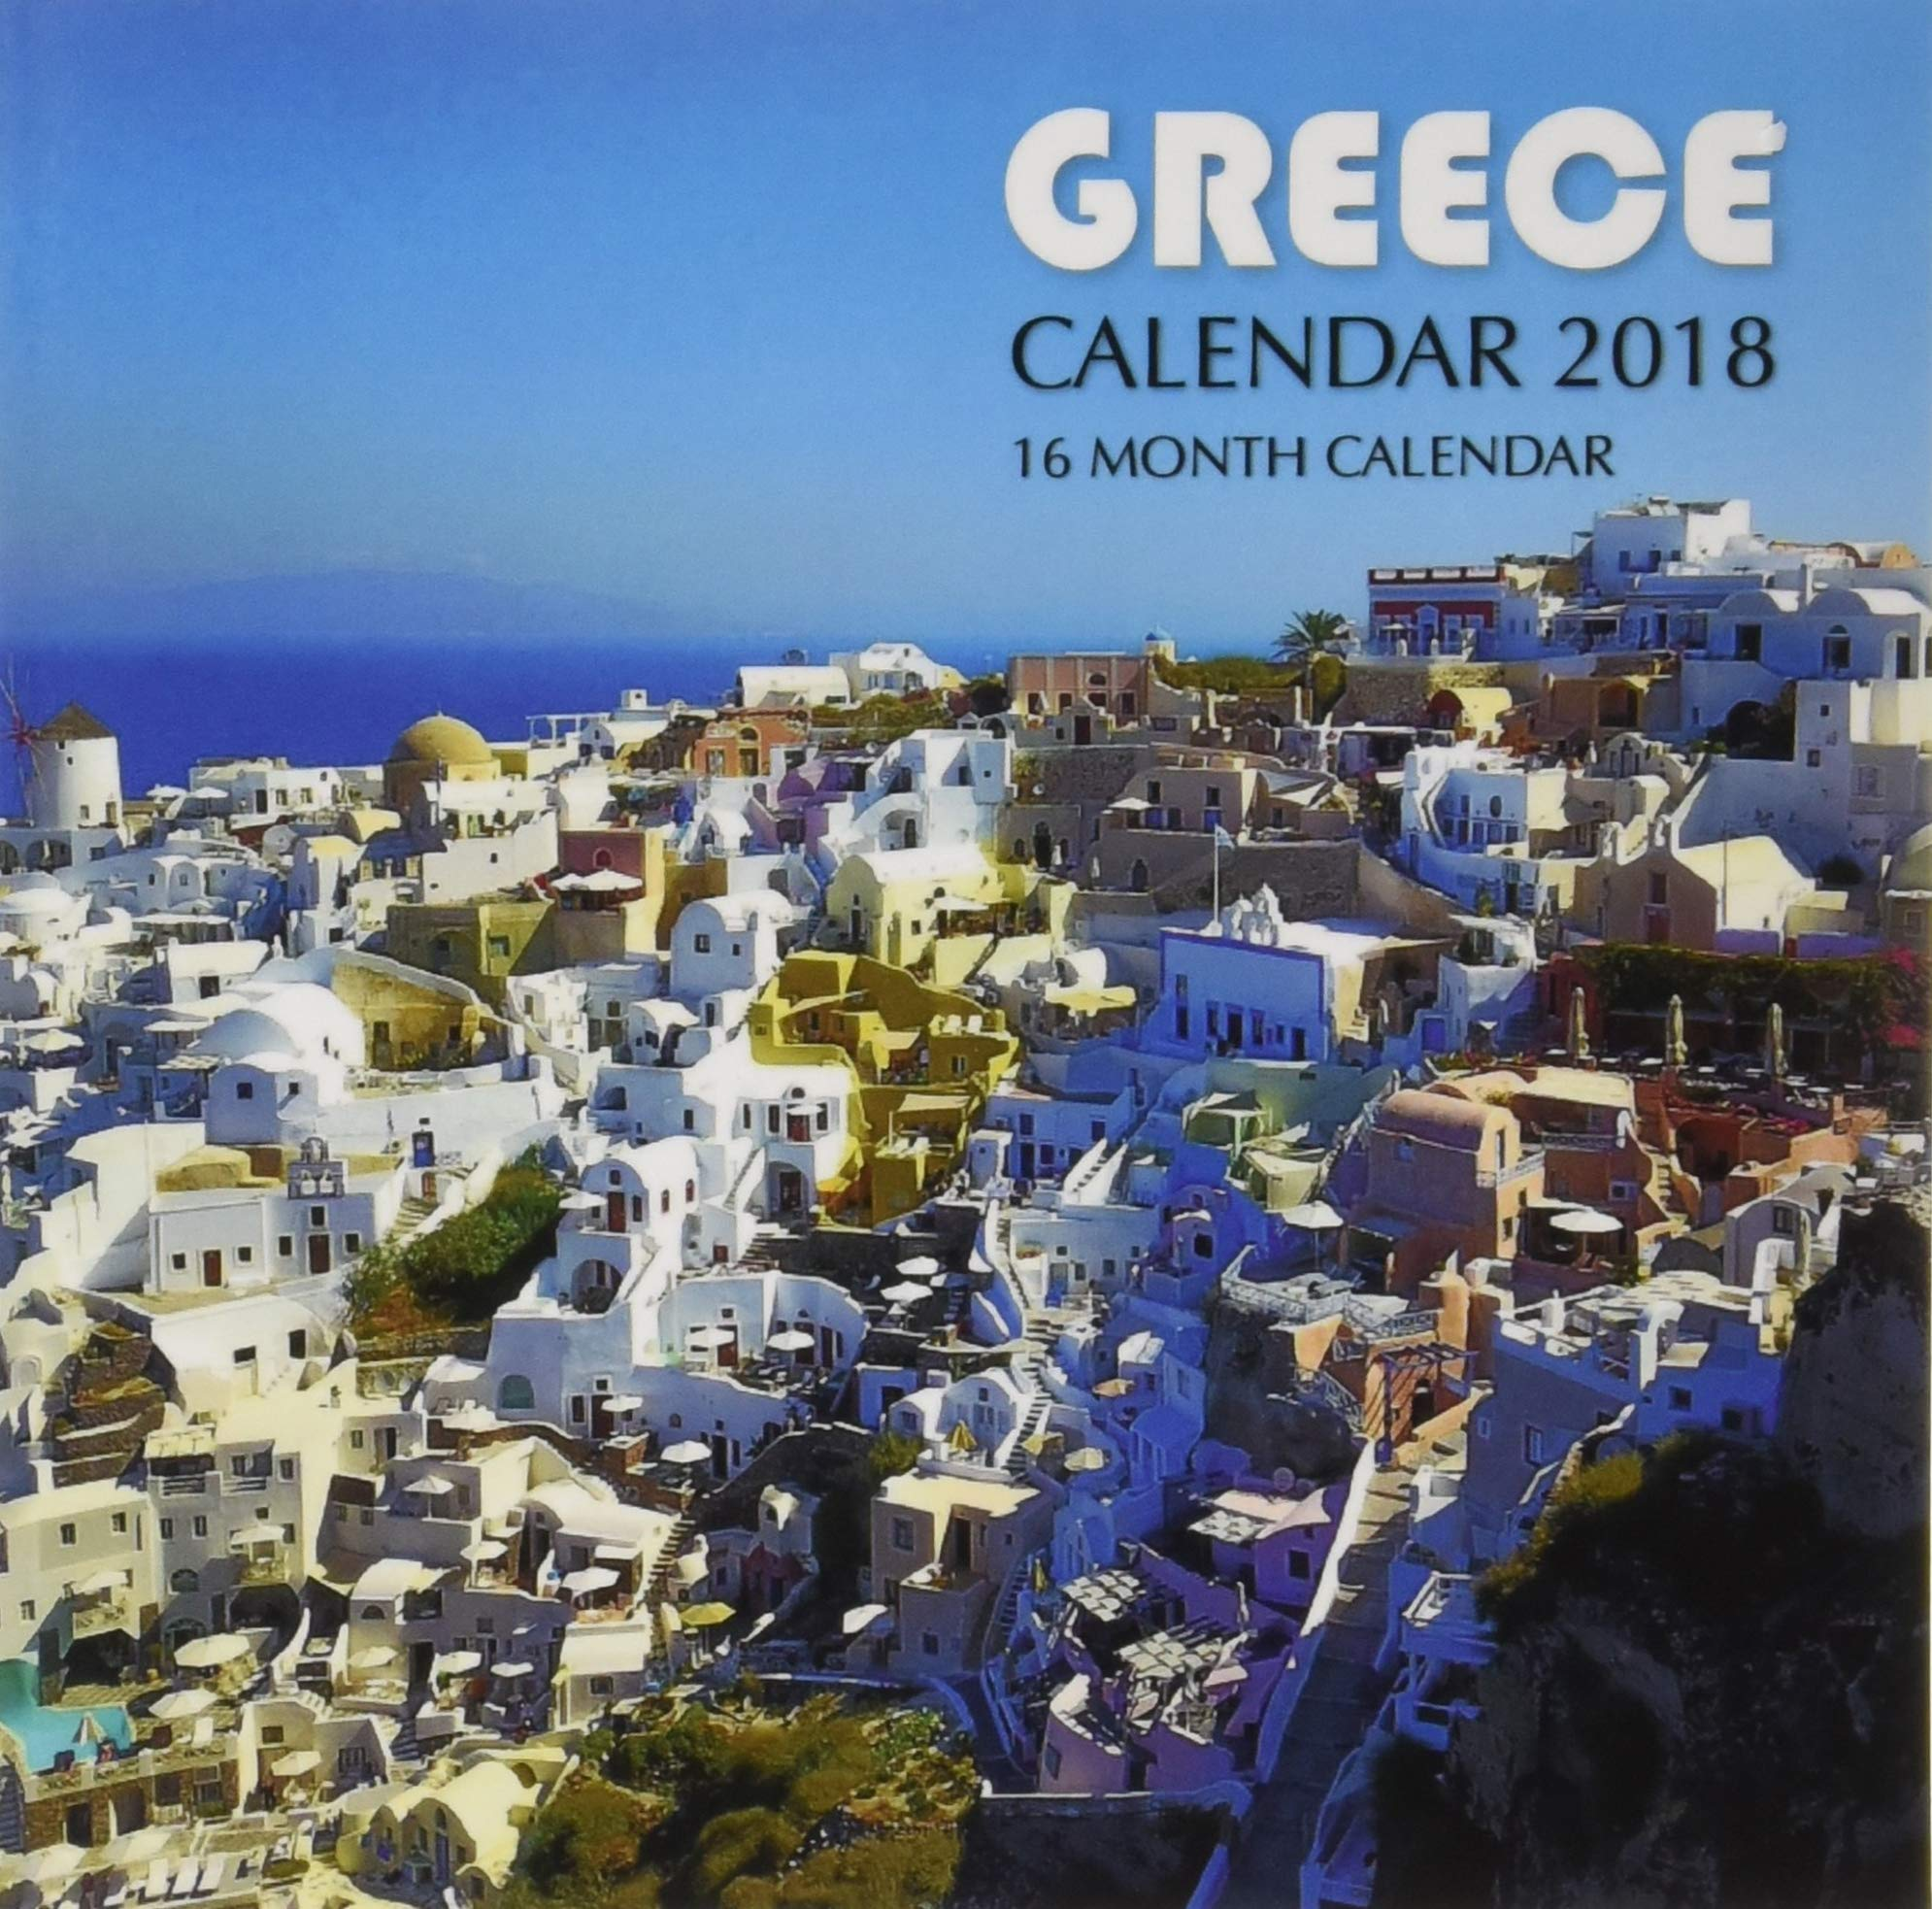 Greece Calendar 2018: 16 Month Calendar PDF